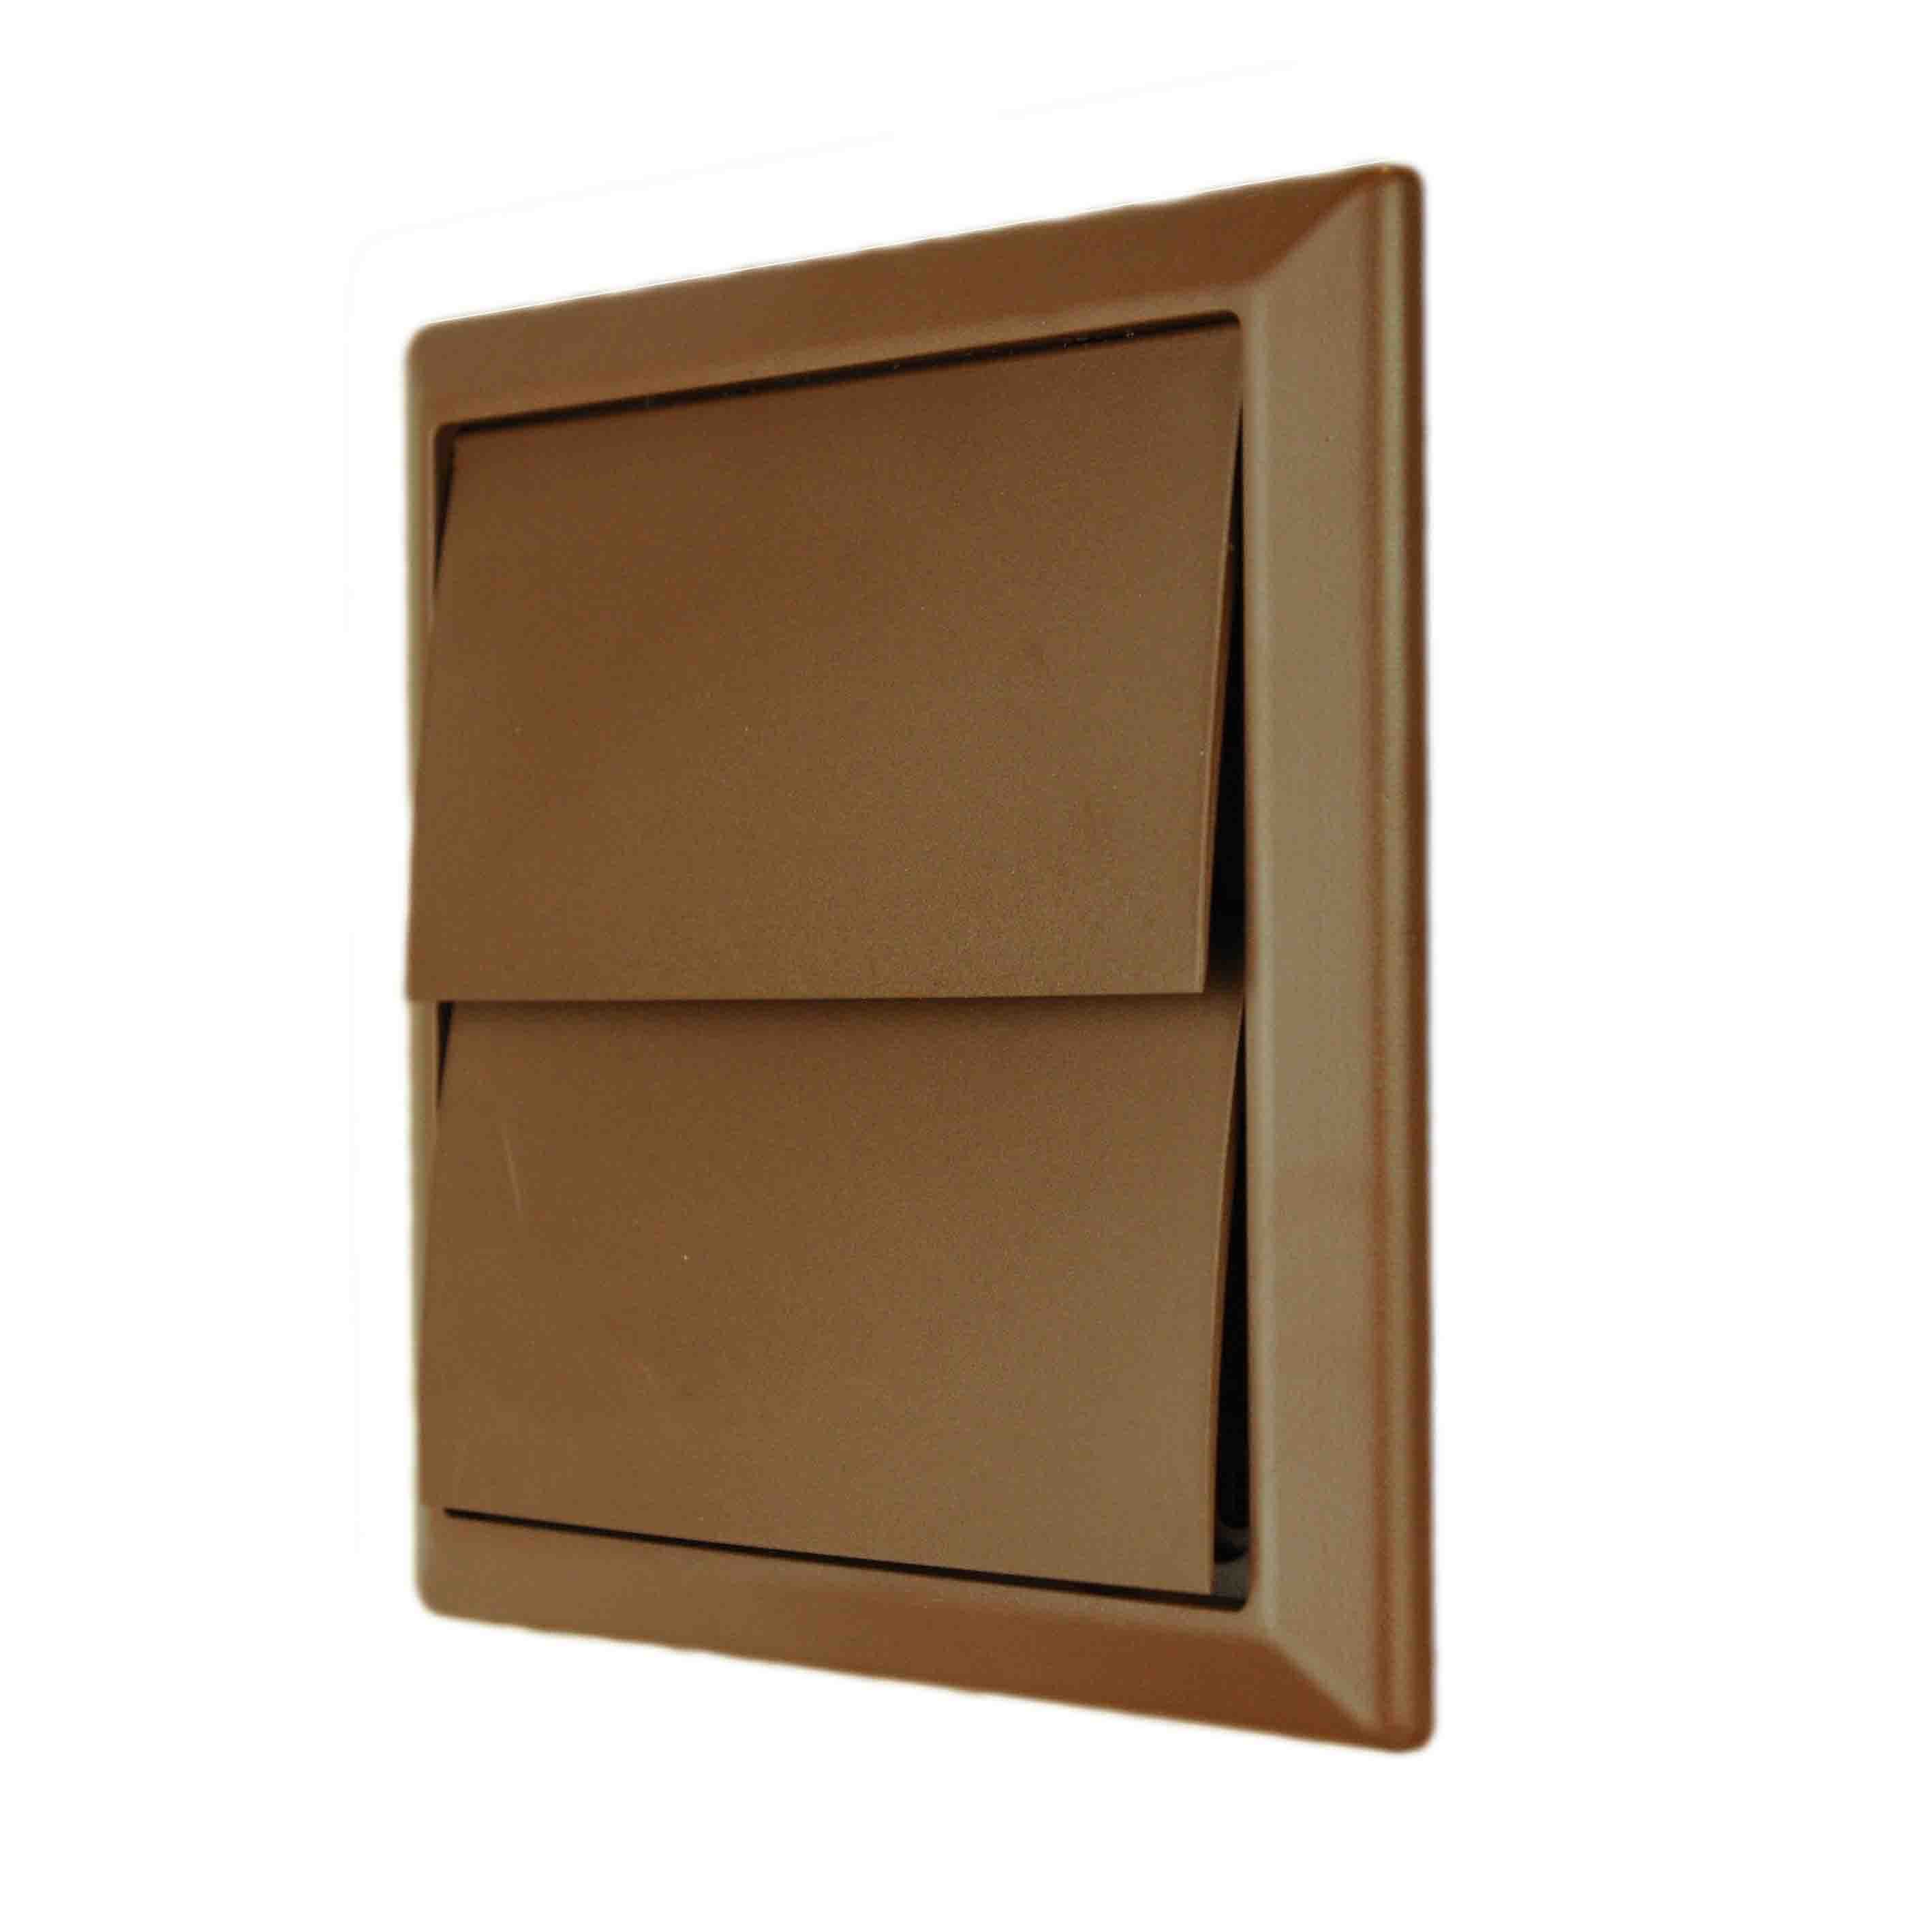 Domus 4900B Wall Outlet Rnd 100mm Brown